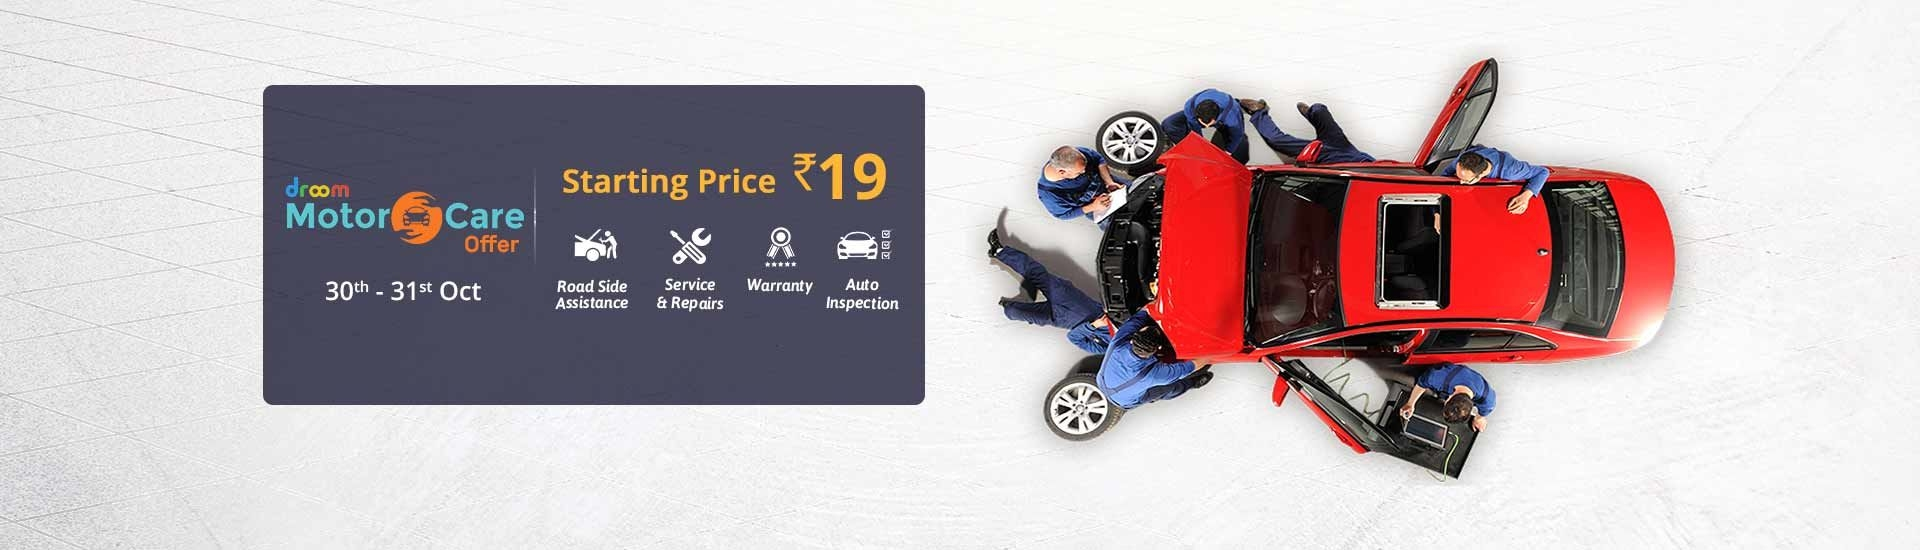 Motorcare | Droom Offer